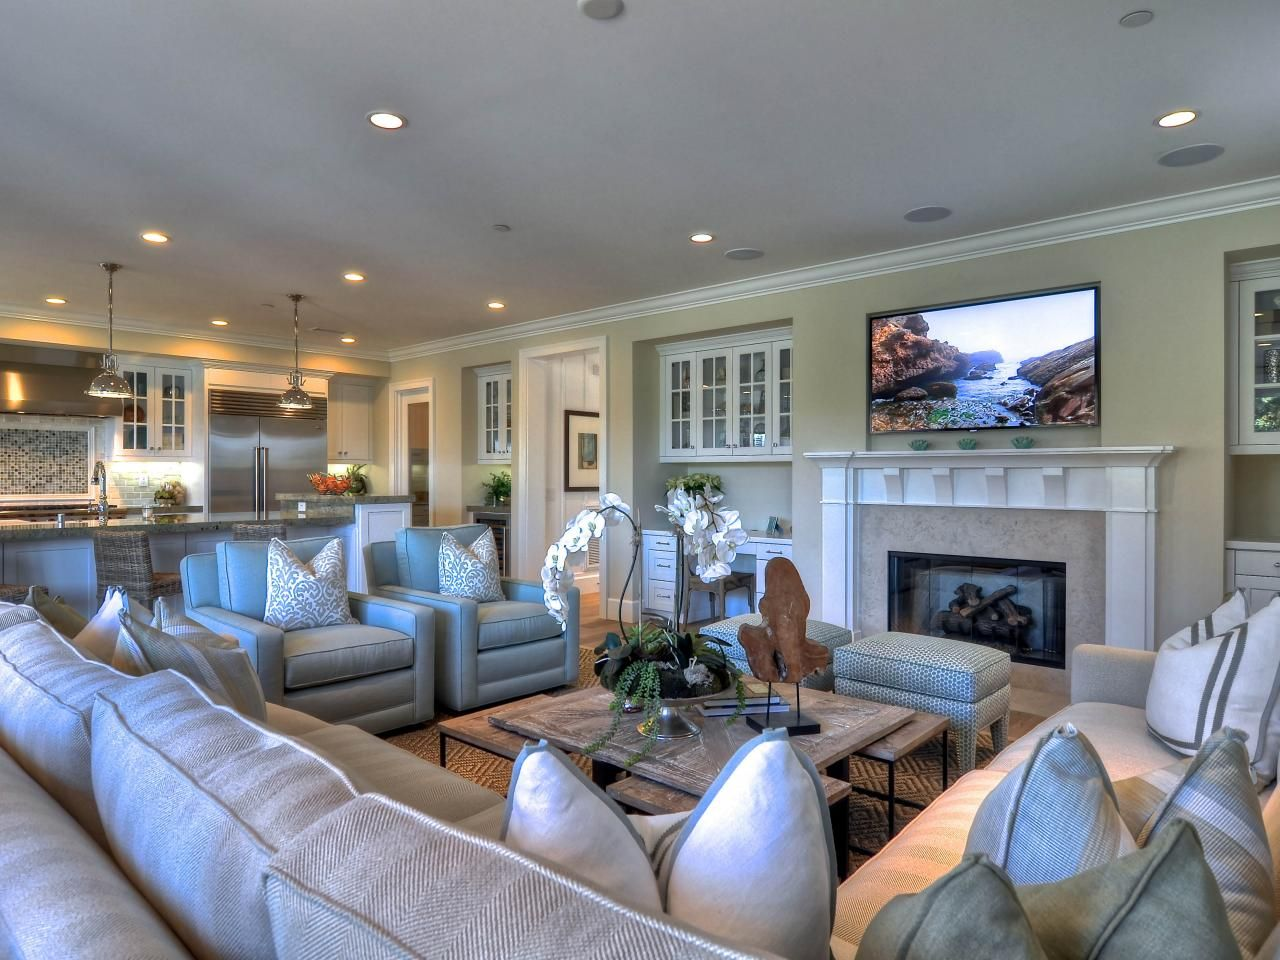 Coastal decor is found in the details in this spacious for Big living room ideas